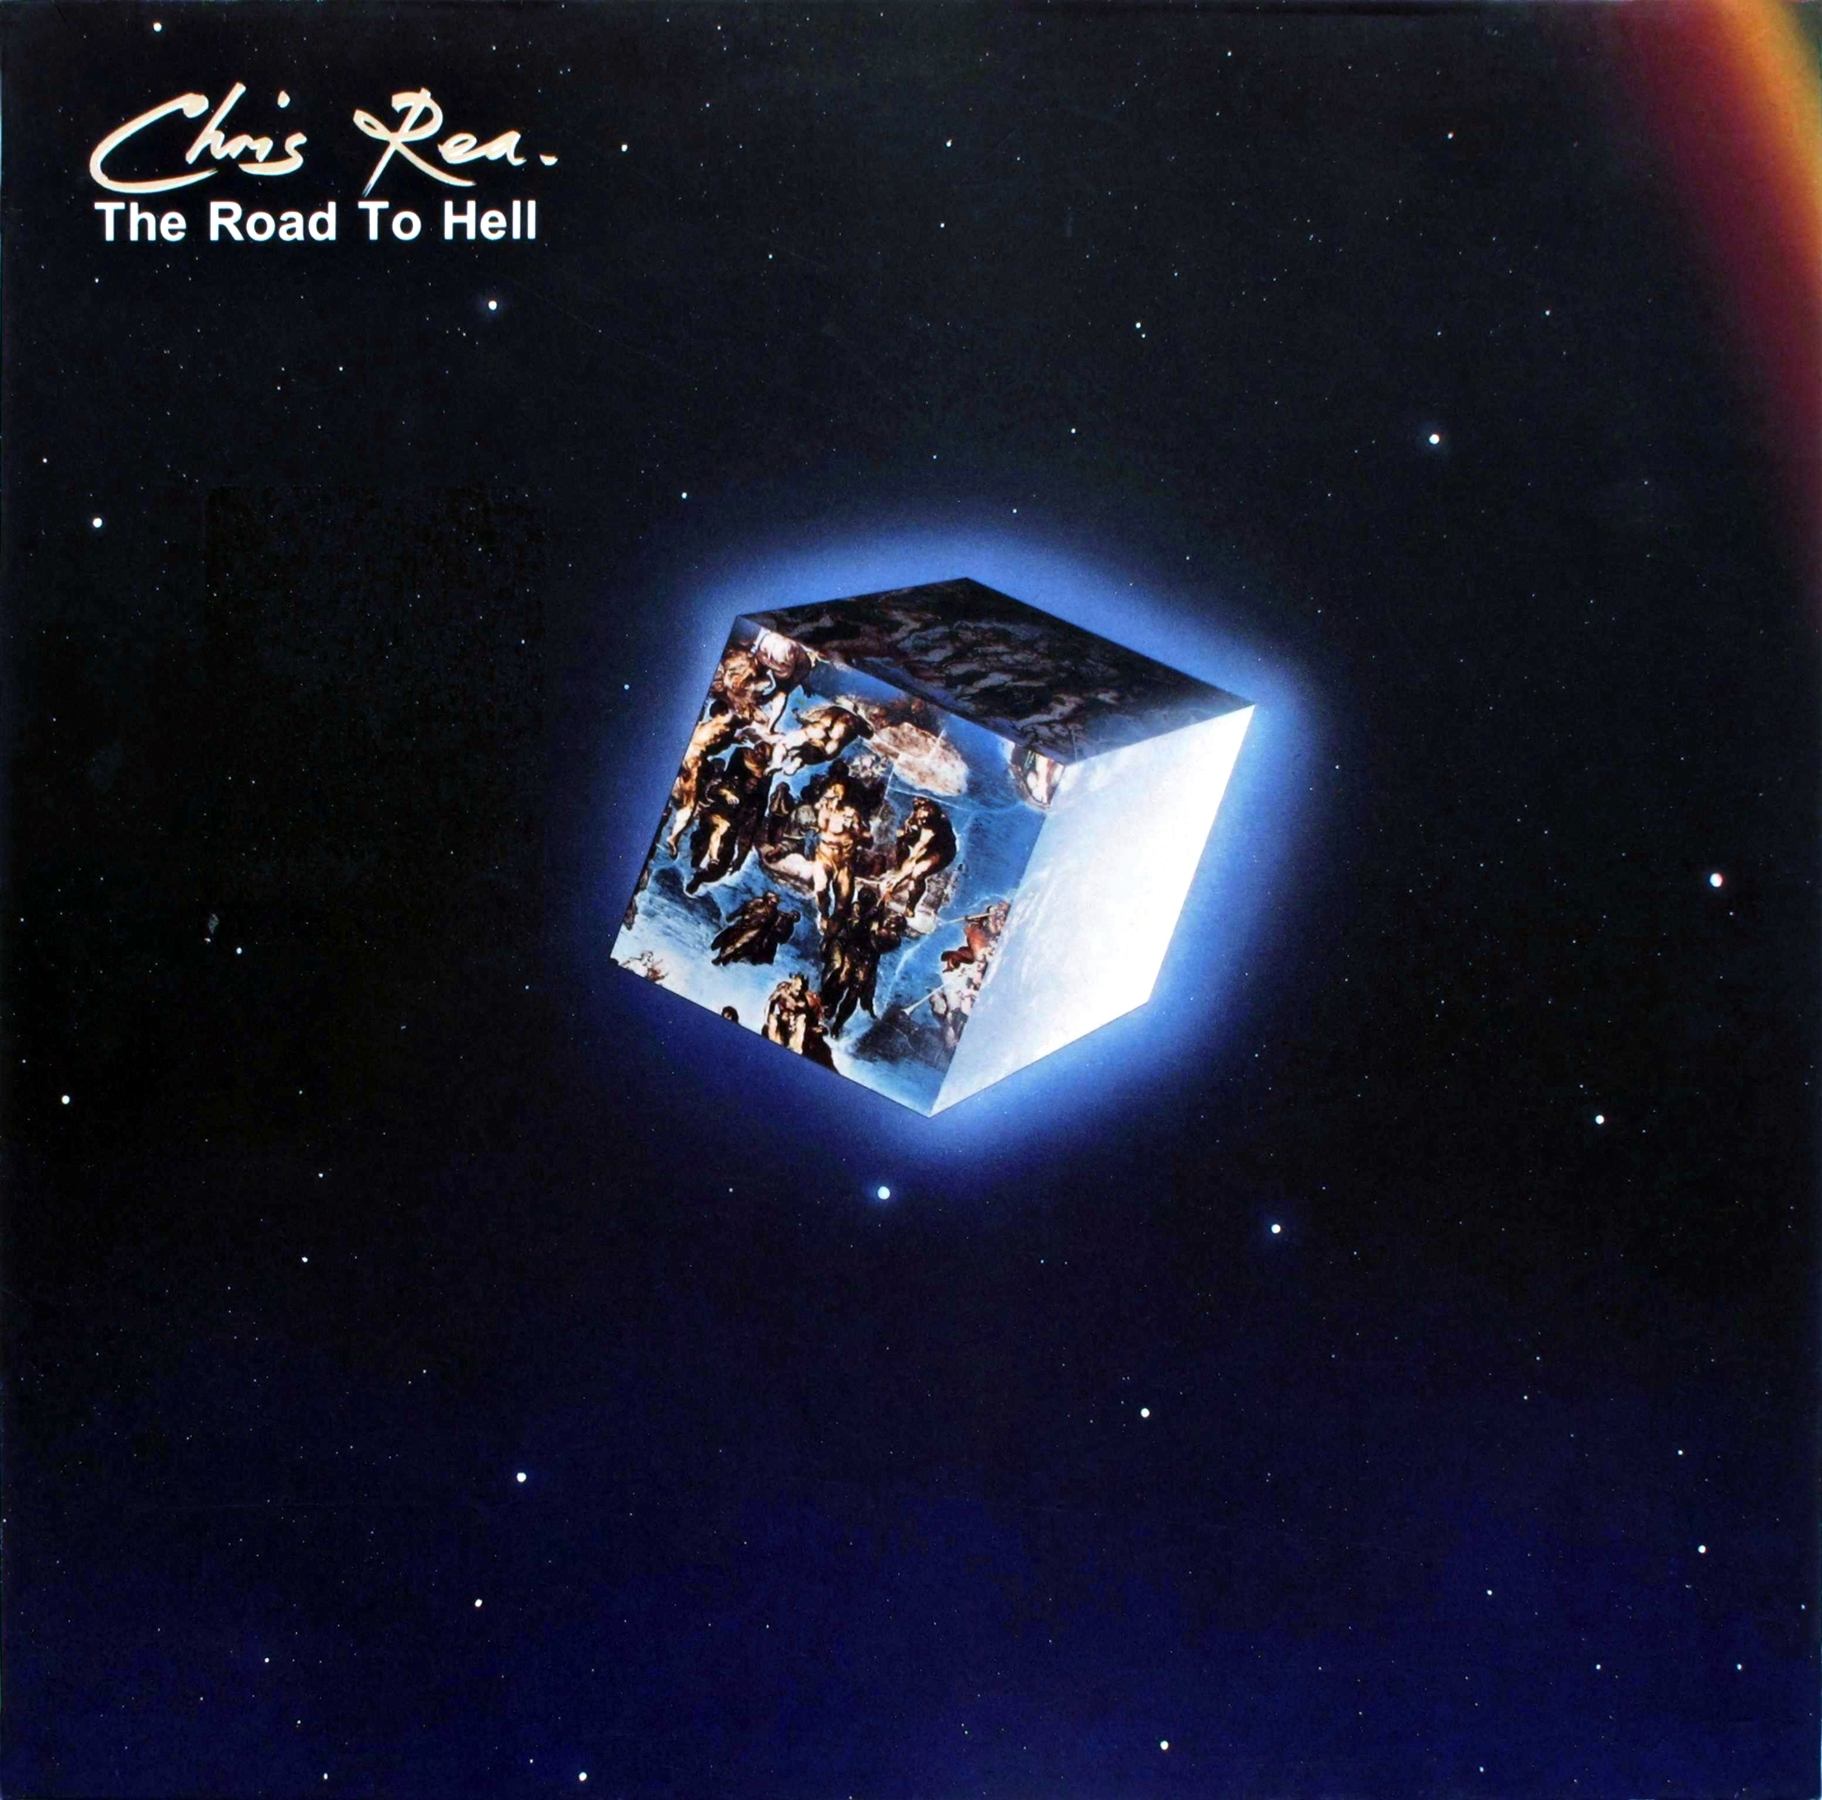 Chris Rea - The Road To Hell (Part 2)